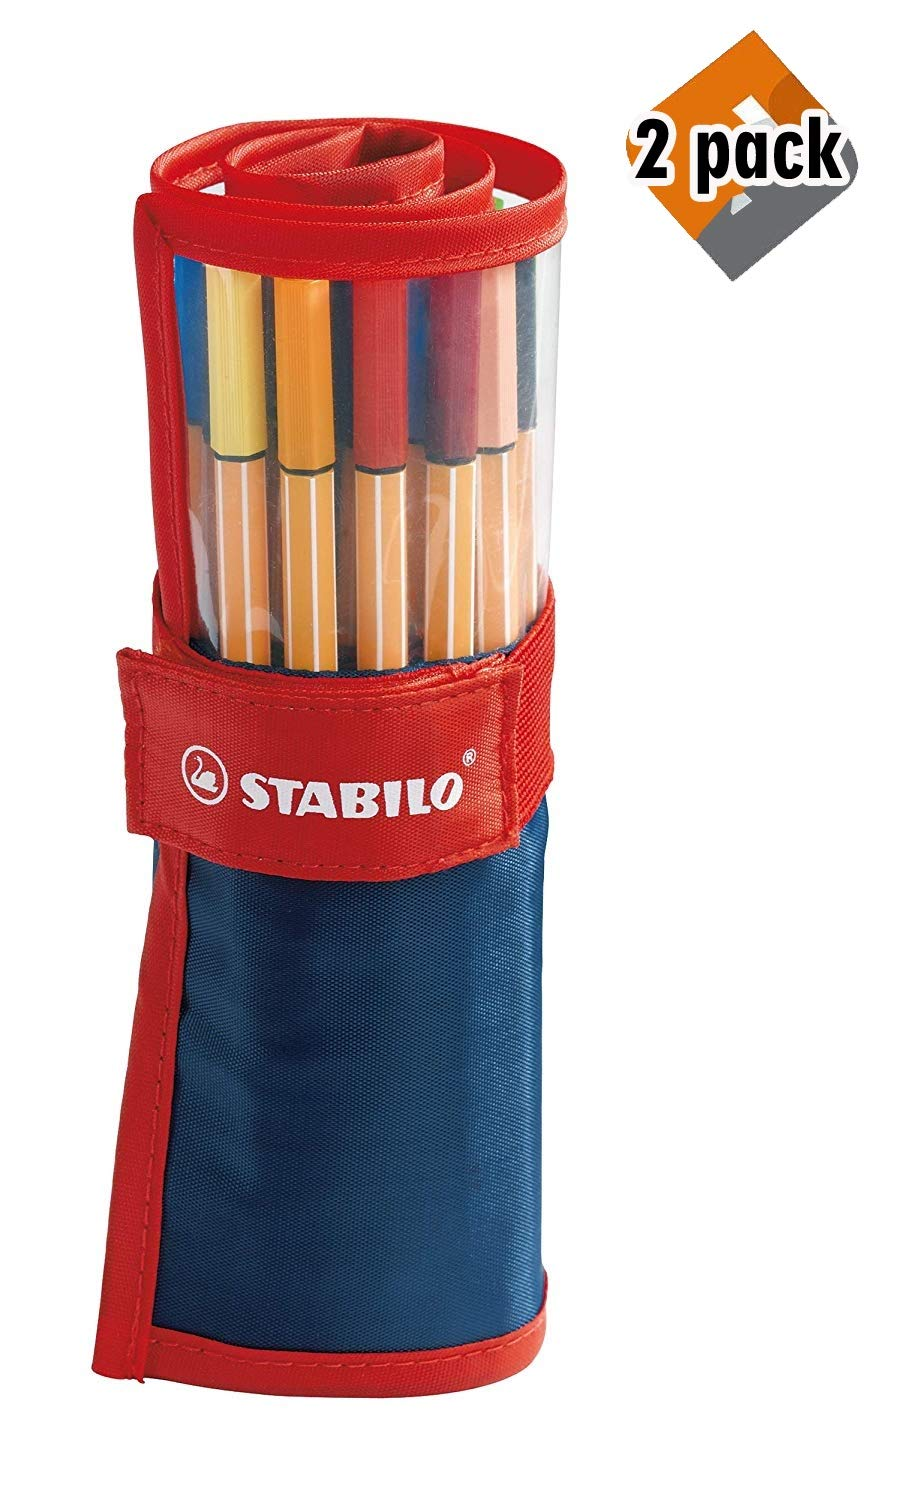 Stabilo Point 88 Fineliner Pens, 0.4 mm - 25-Color Rollercase Set, 2 Pack by Stabilo (Image #1)